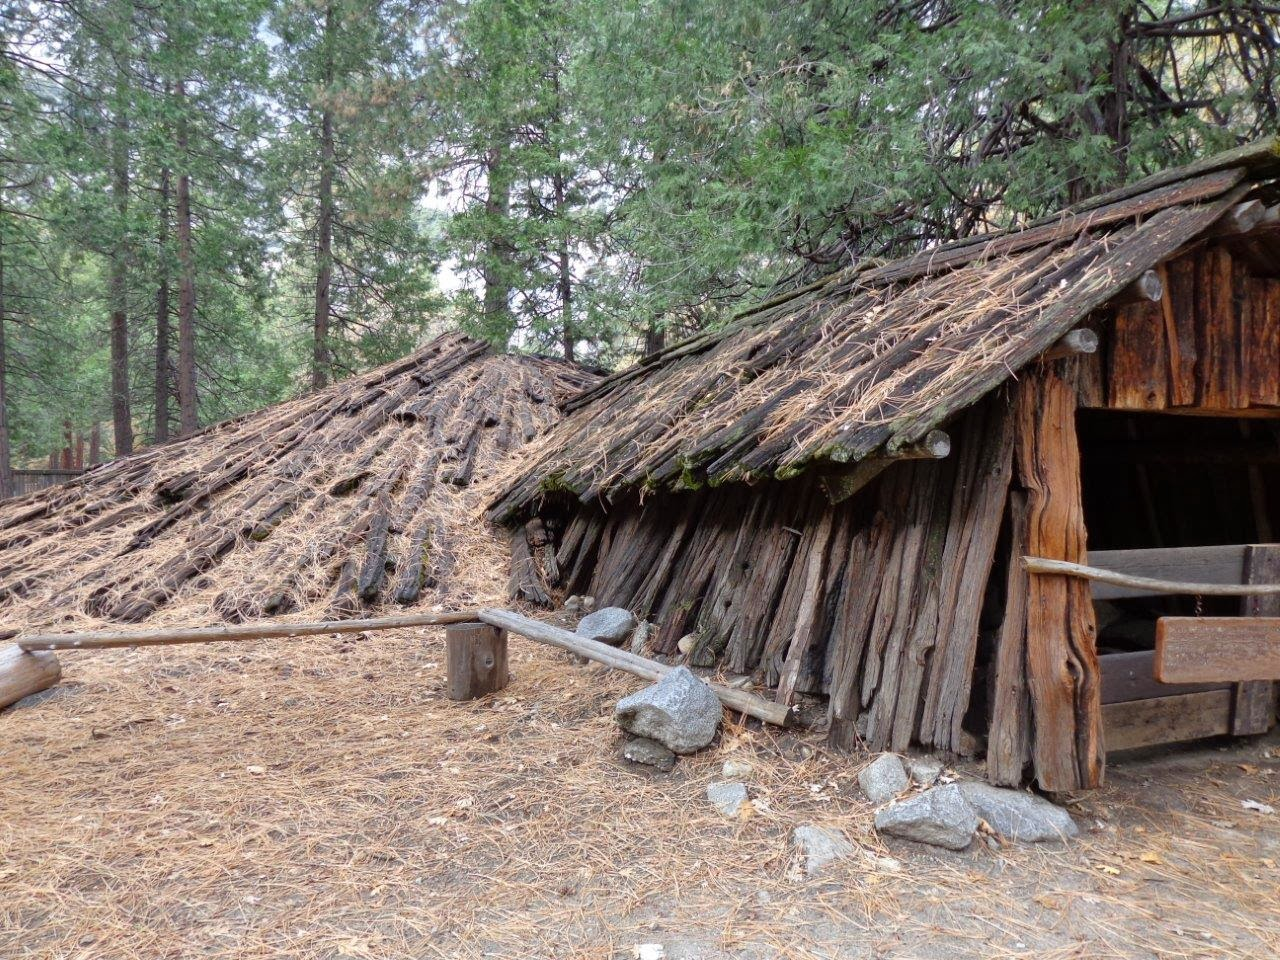 1000 Images About Indigenous Dwellings On Pinterest